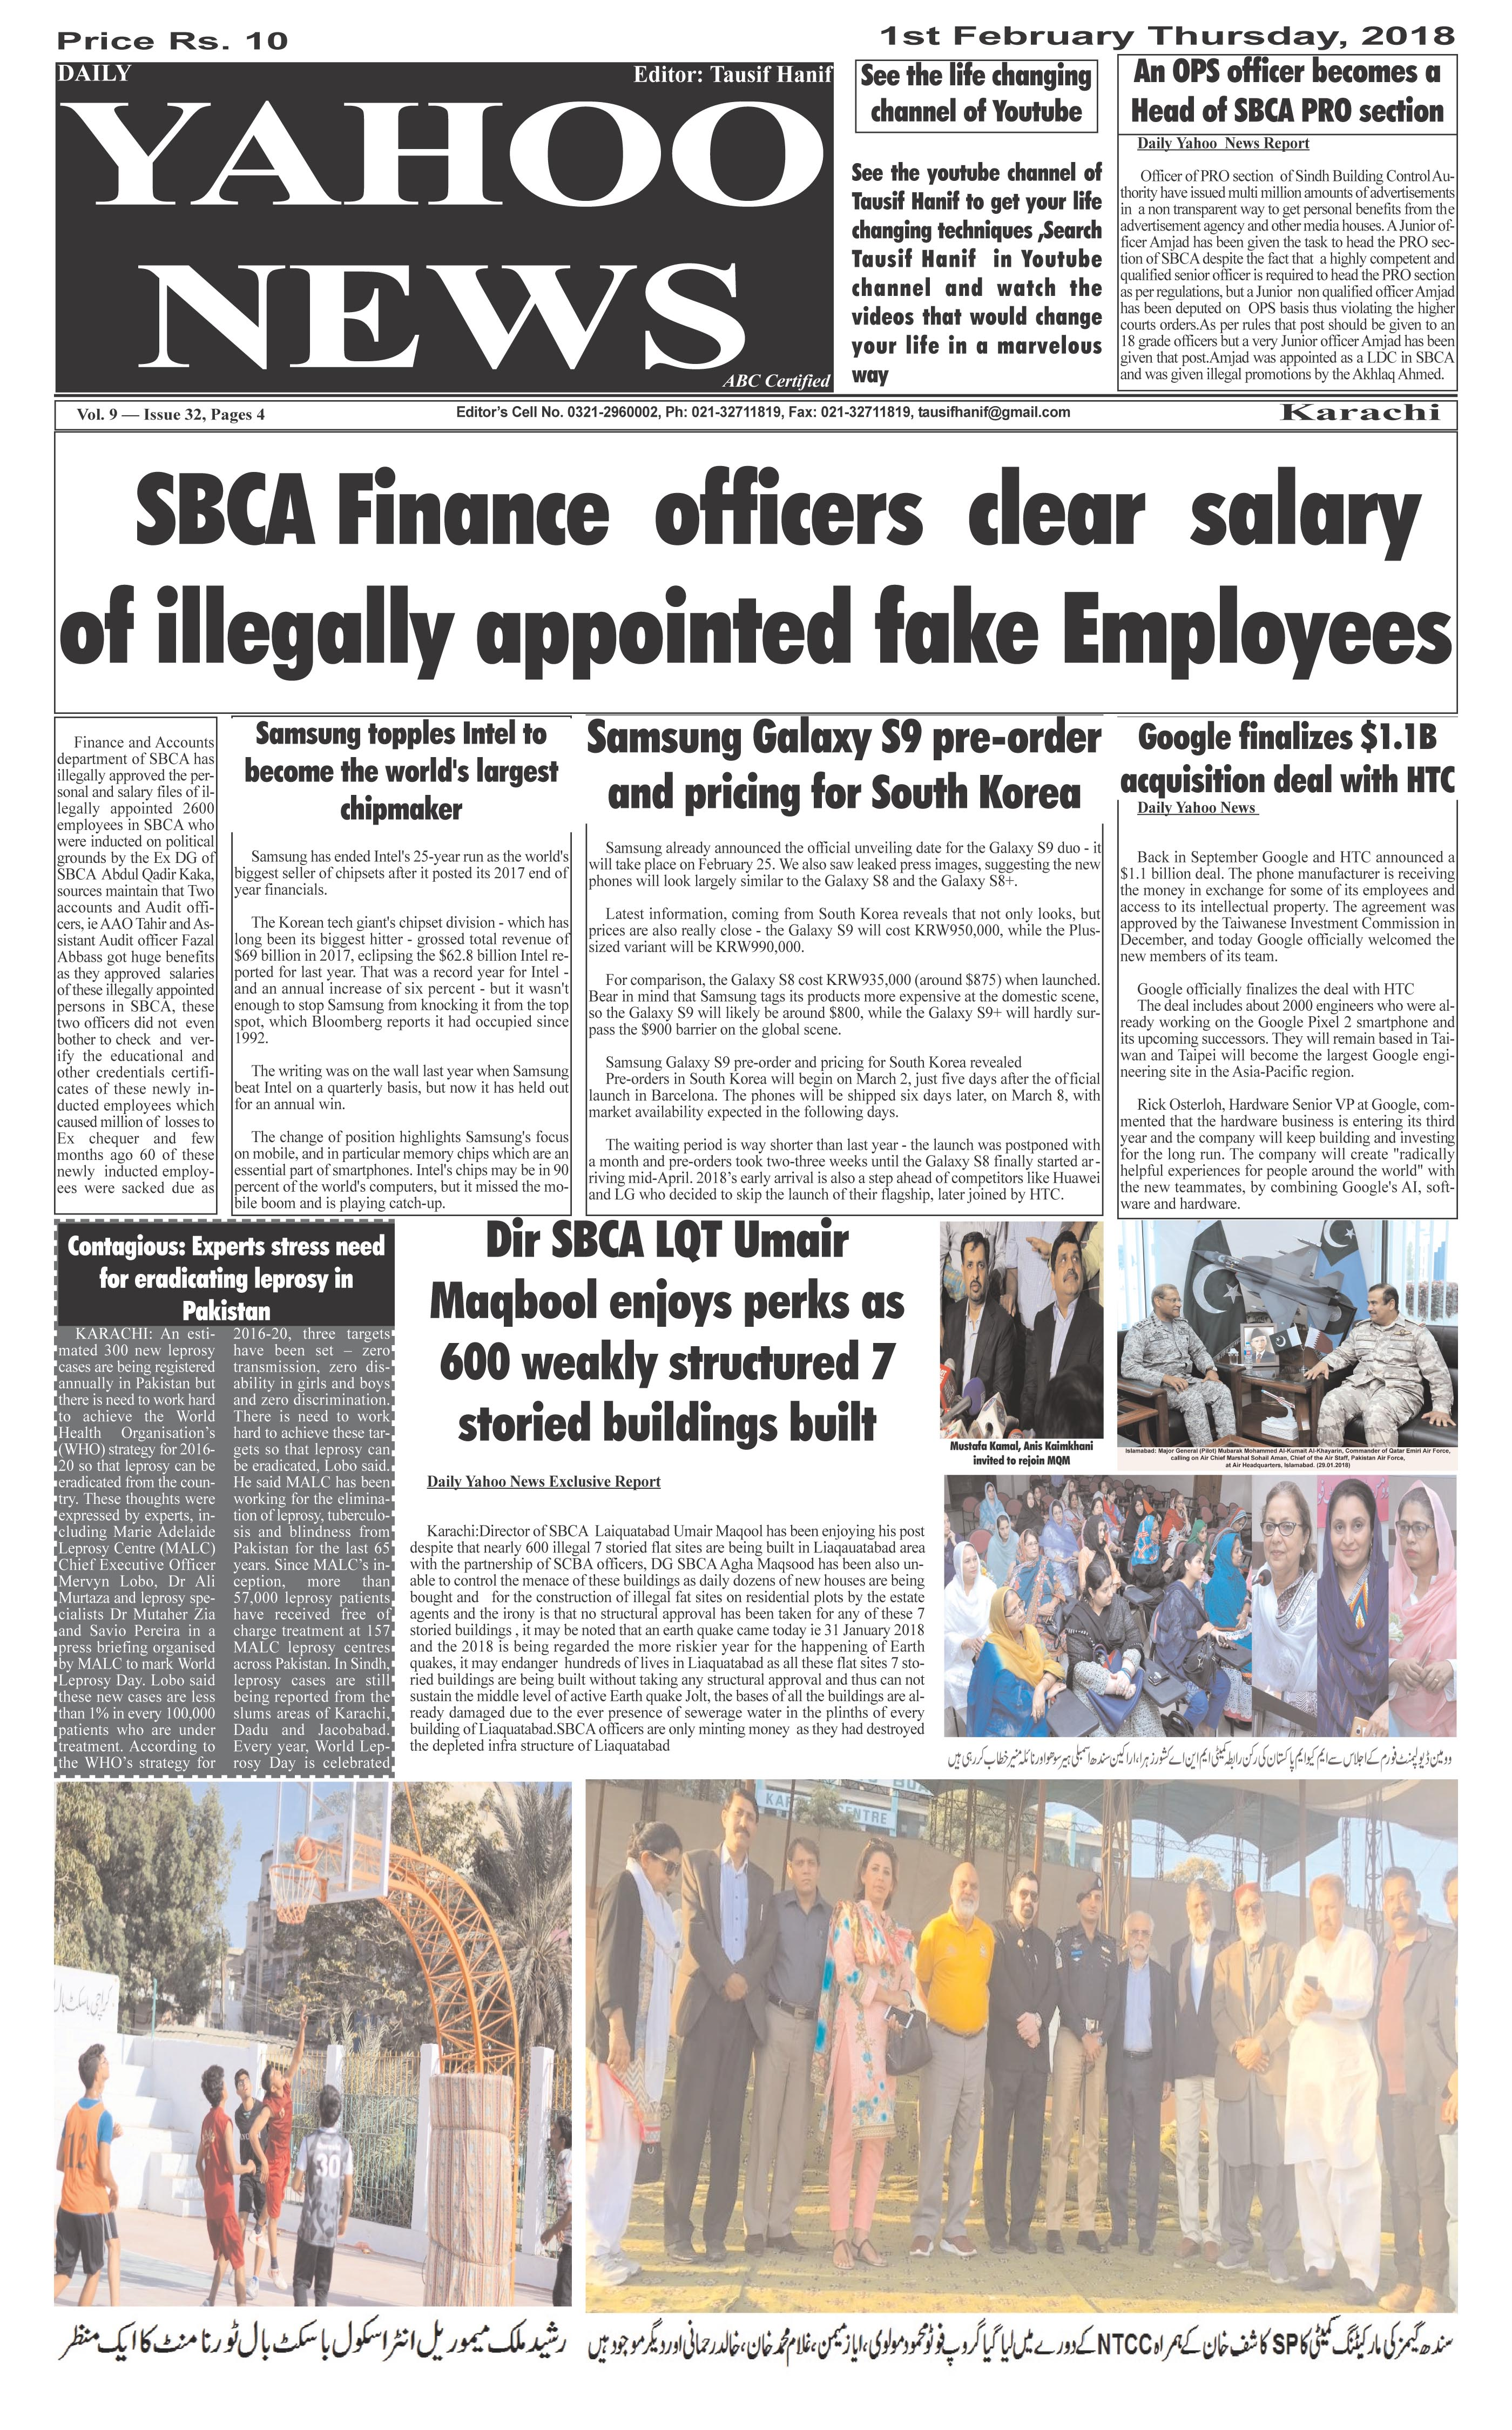 Daily Yahoo News special Metro Edition dated 01-02-2018